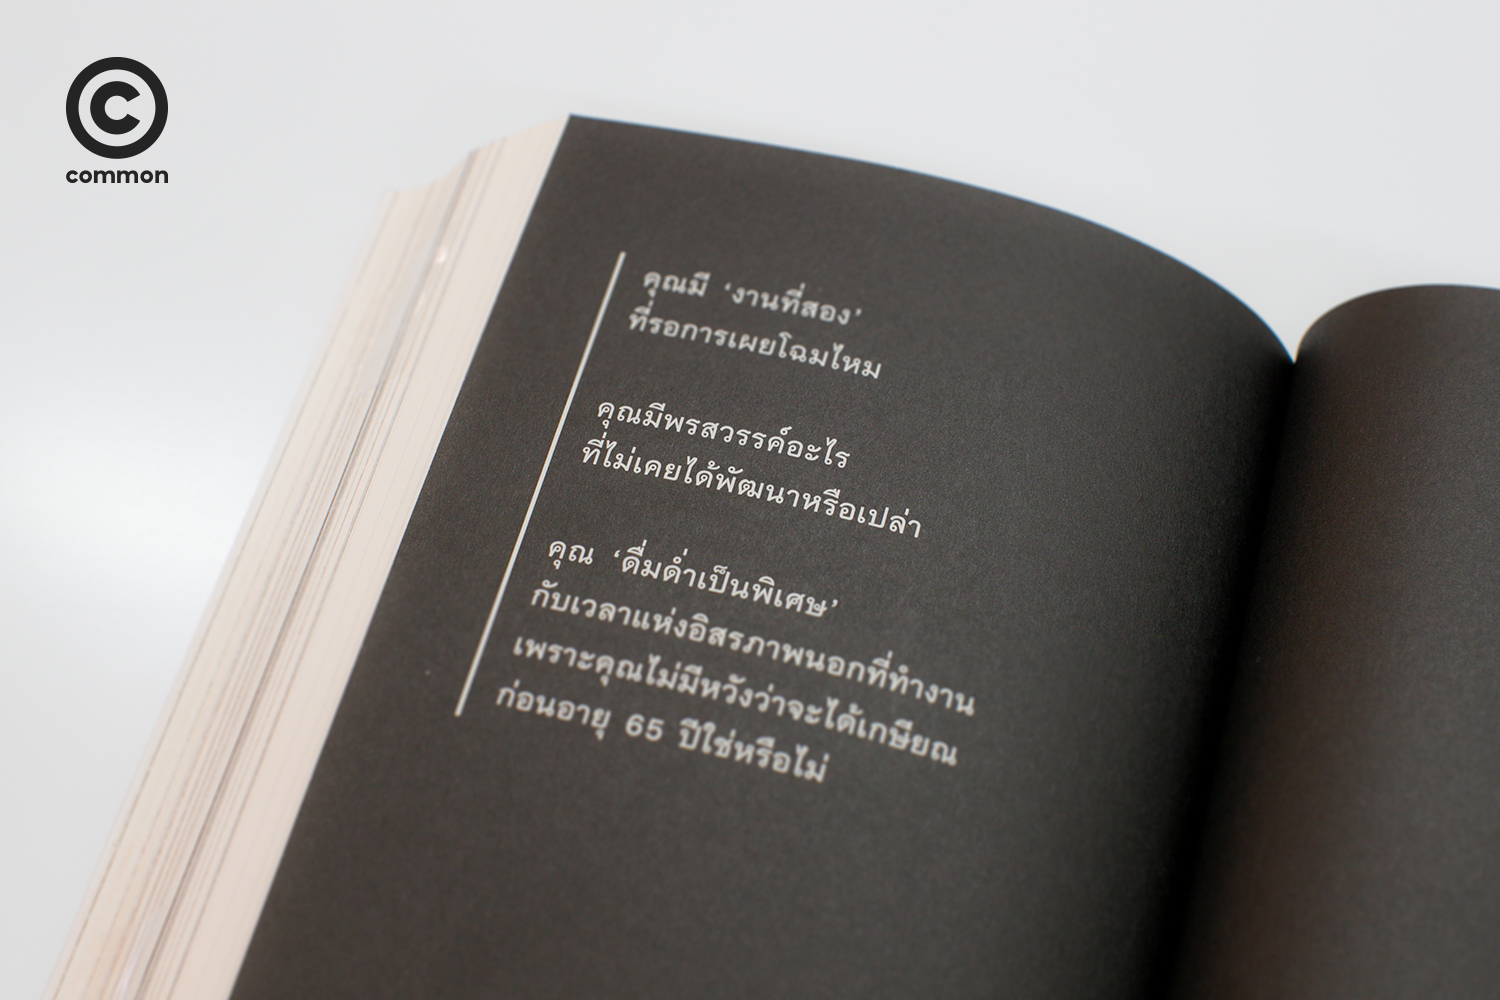 Your Money Your life เงินหรือชีวิต